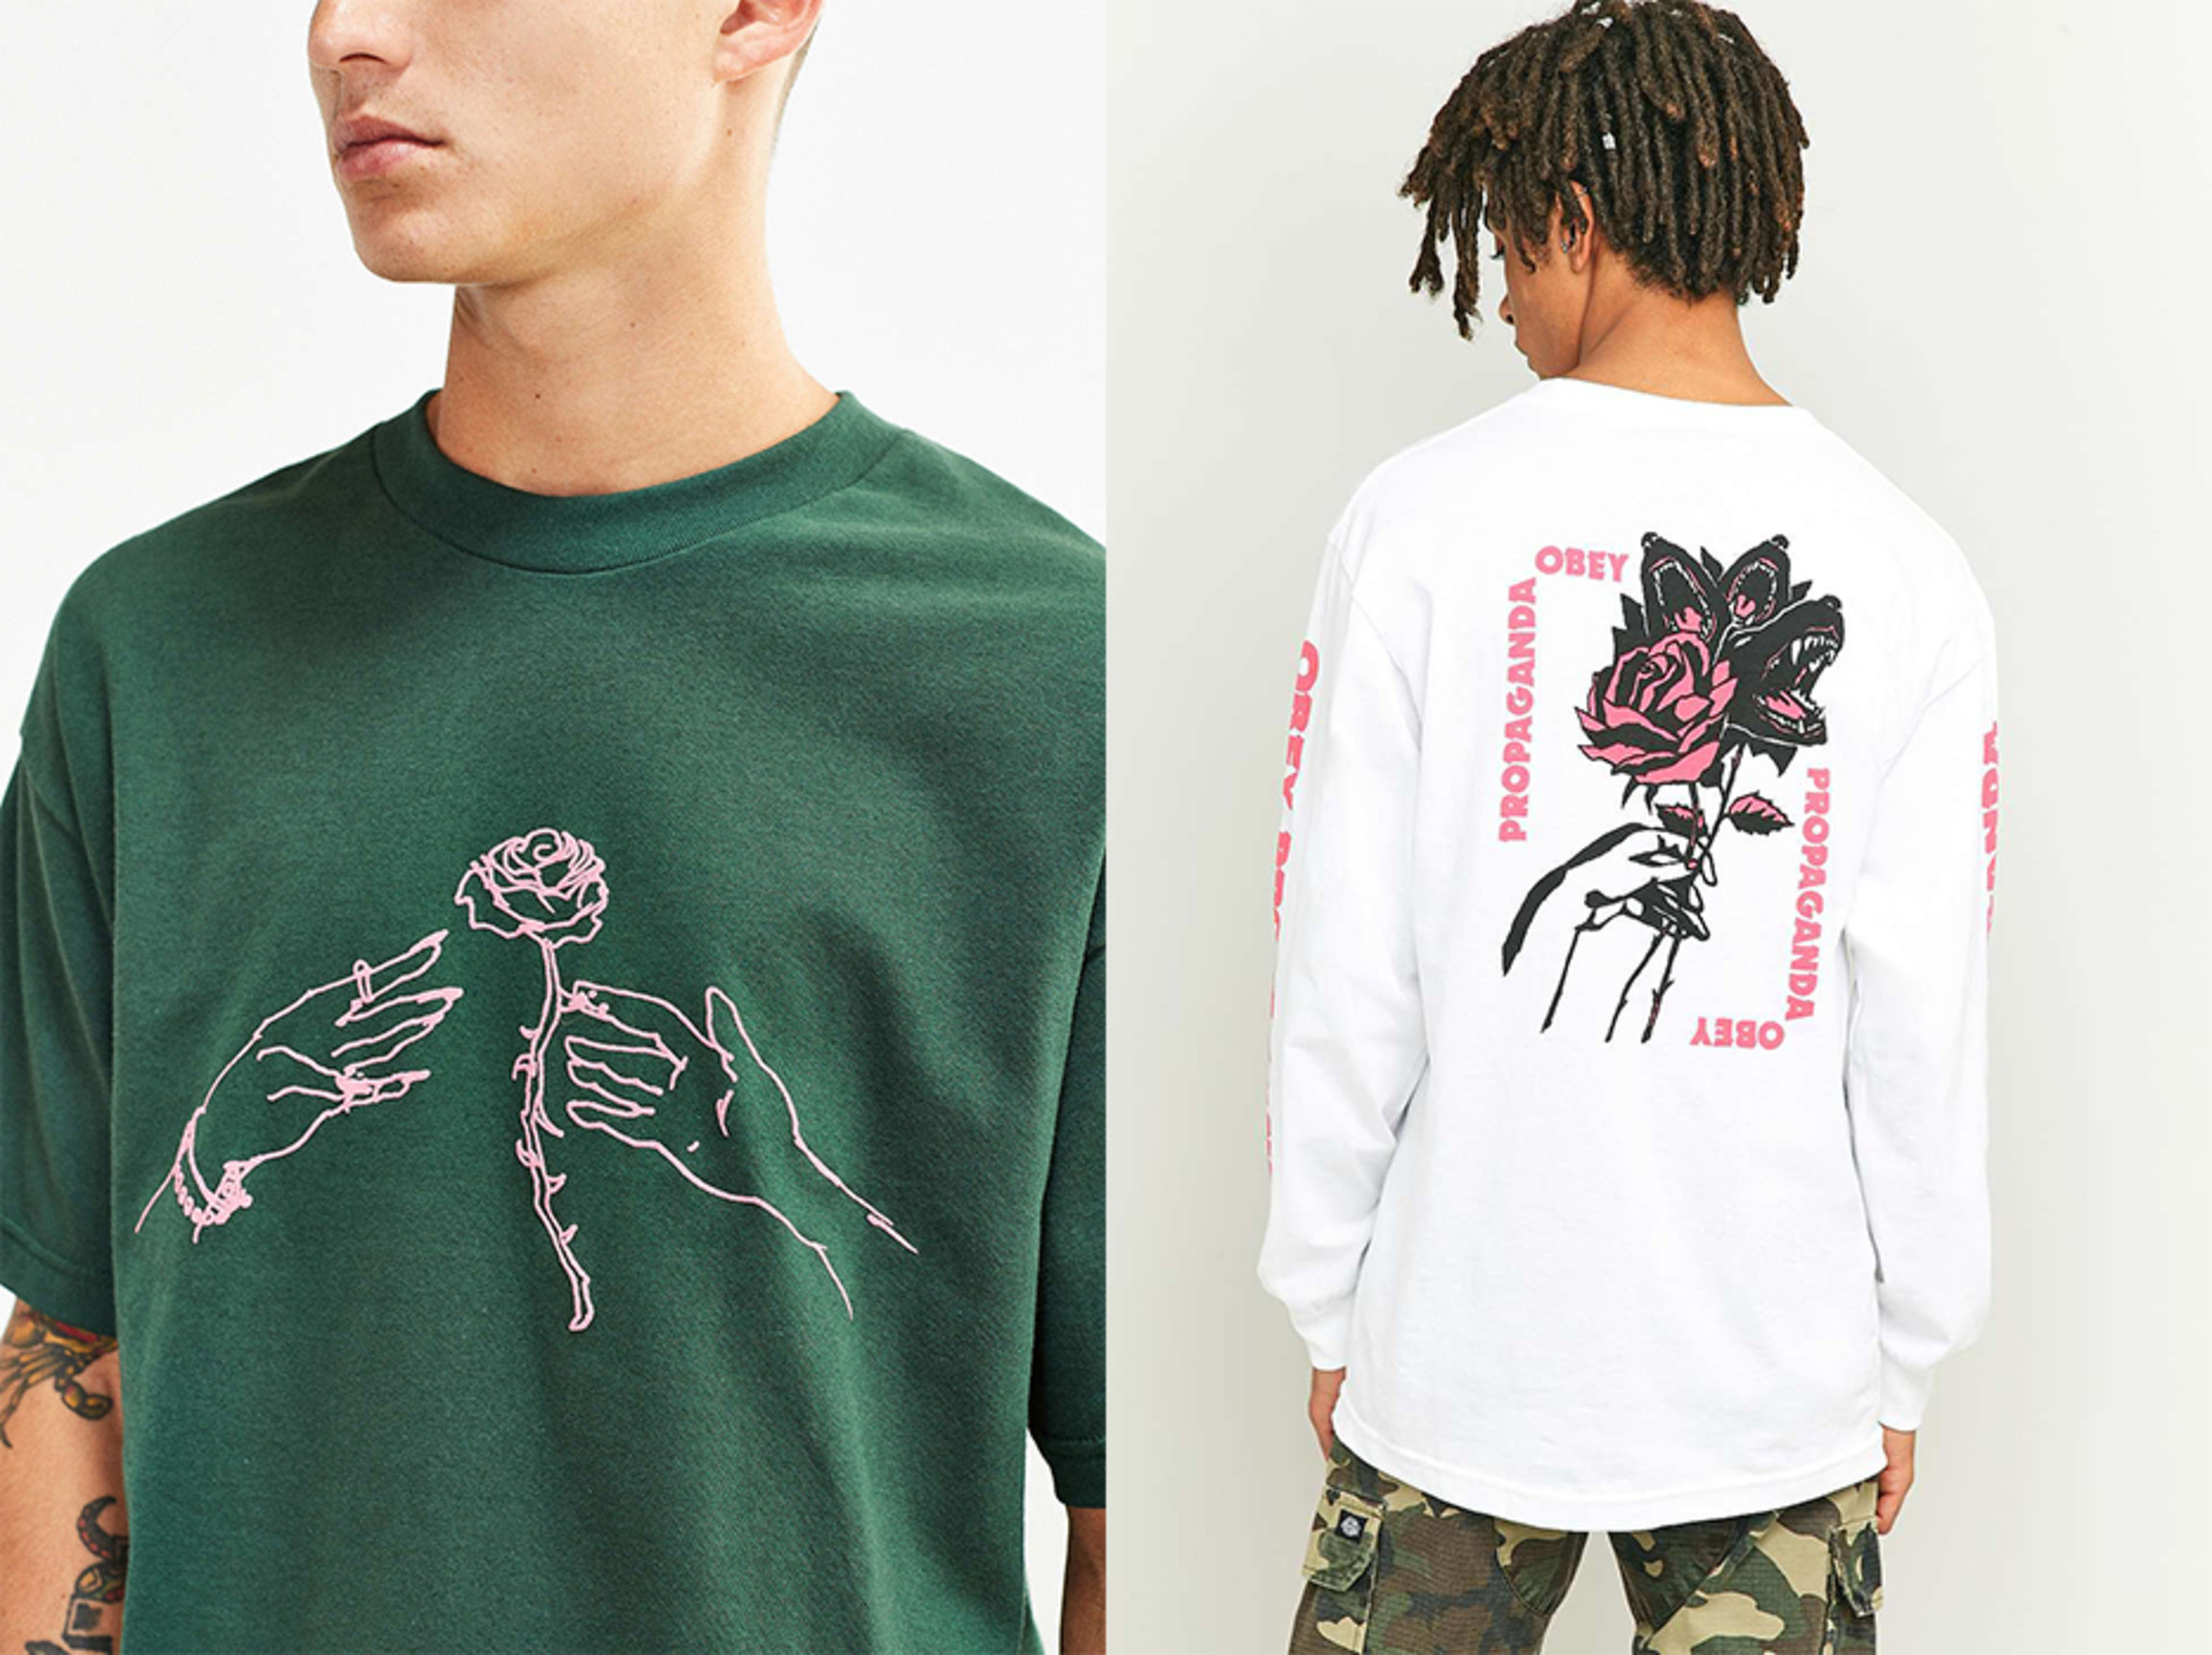 ... and easy to print on everything from enamel pins and patches to socks  and t-shirts. Roses have flooded the fast fashion market, with similar  styles ... 989efa7af36